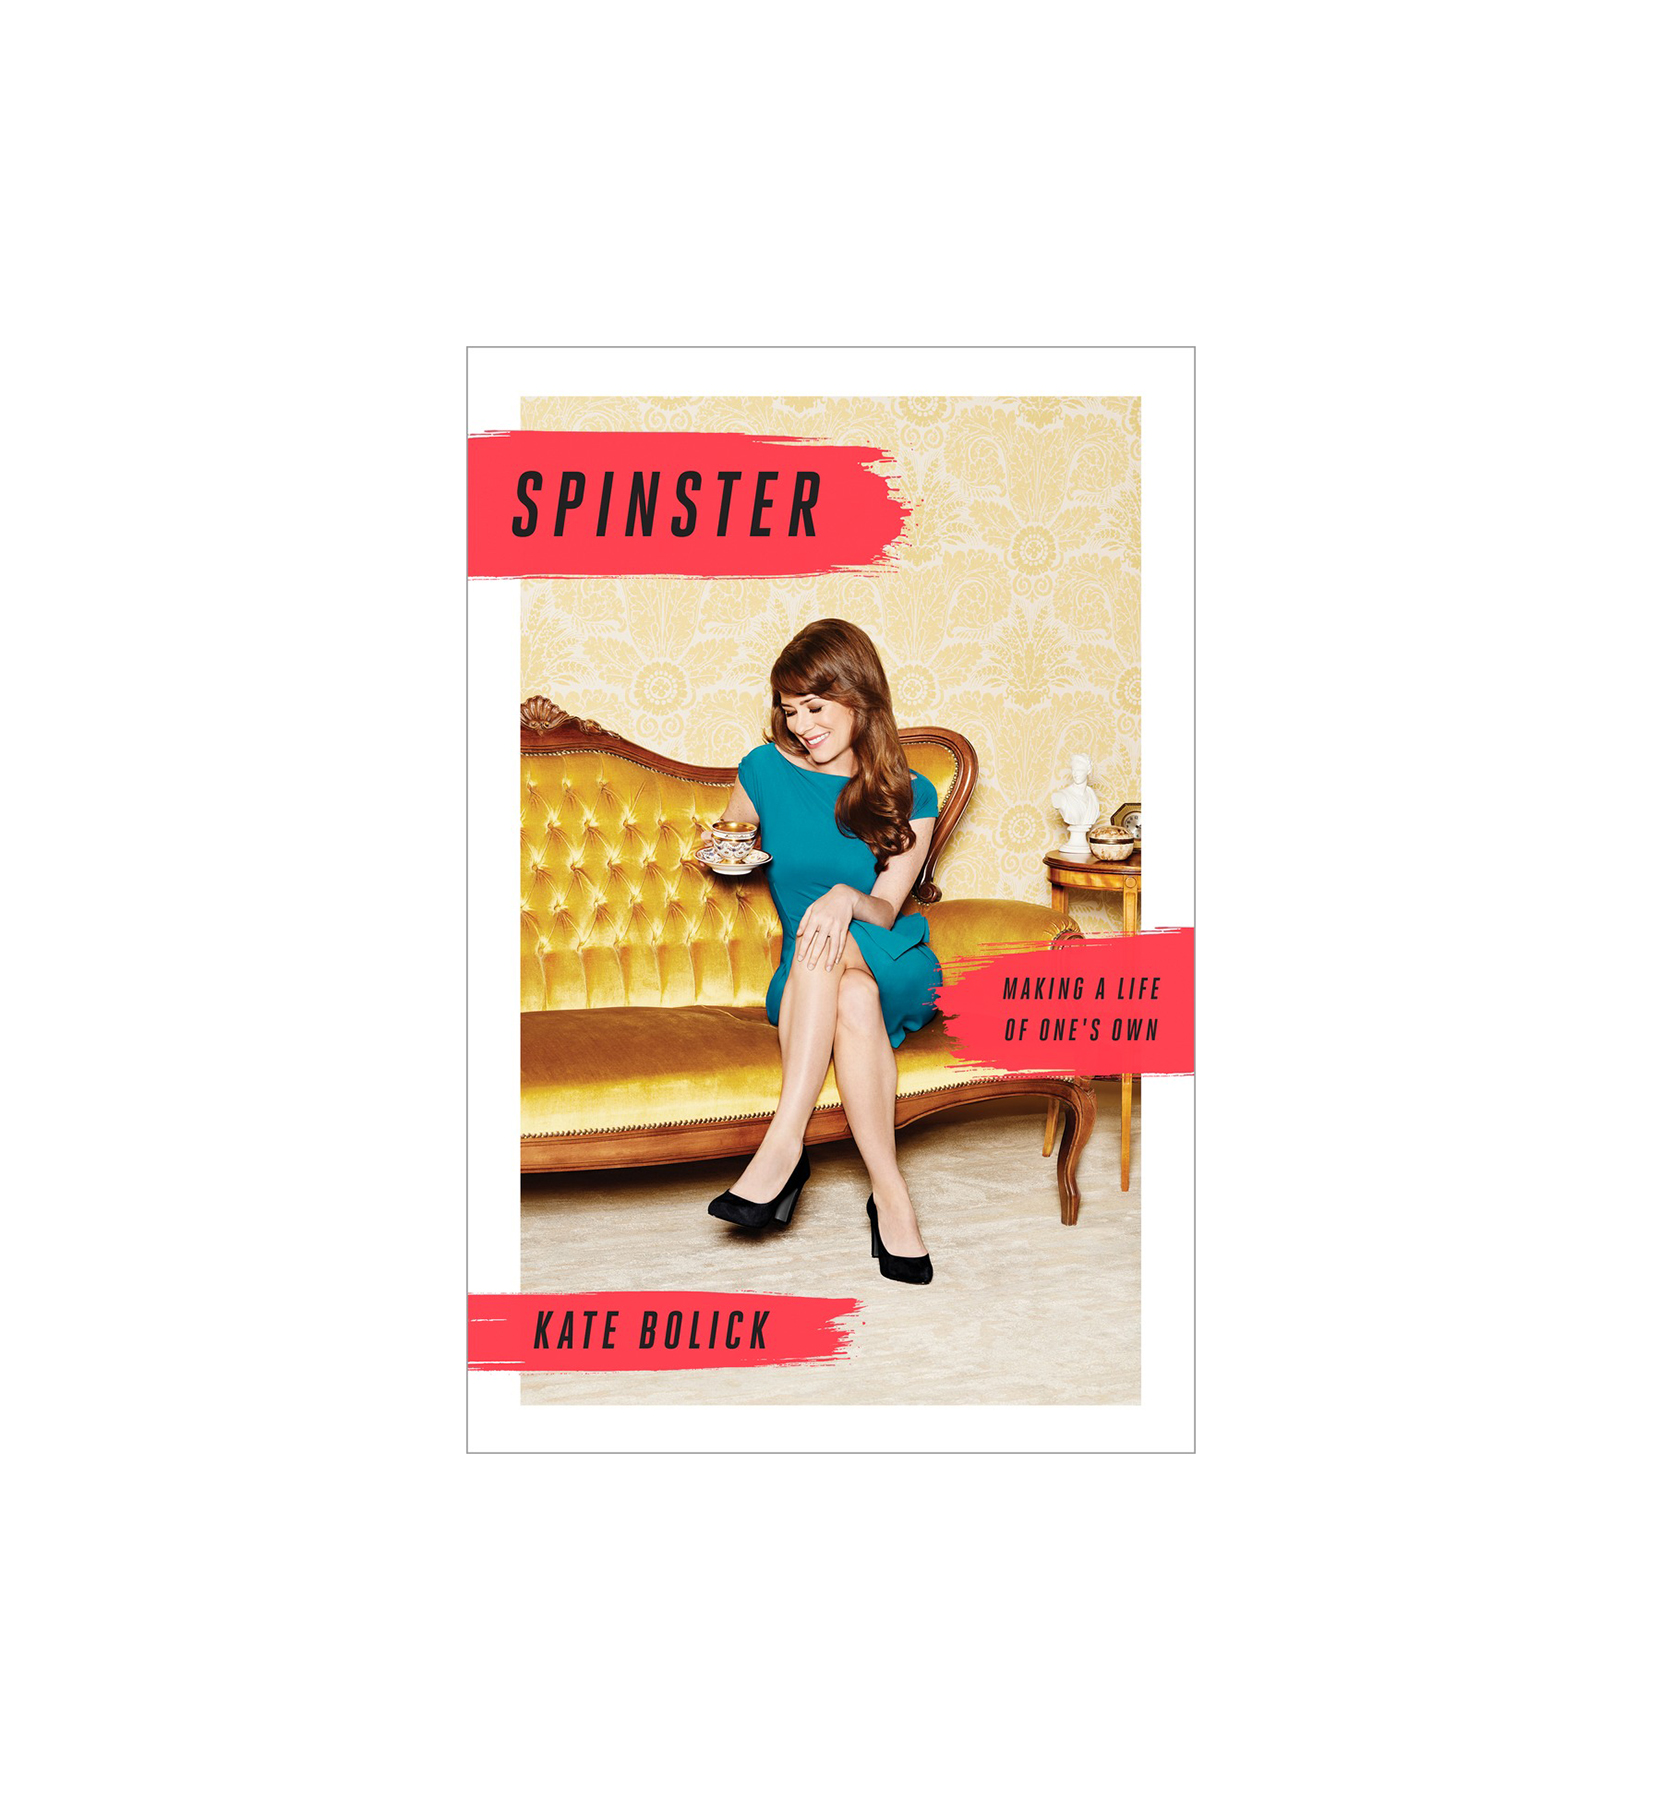 Spinster, by Kate Bolick